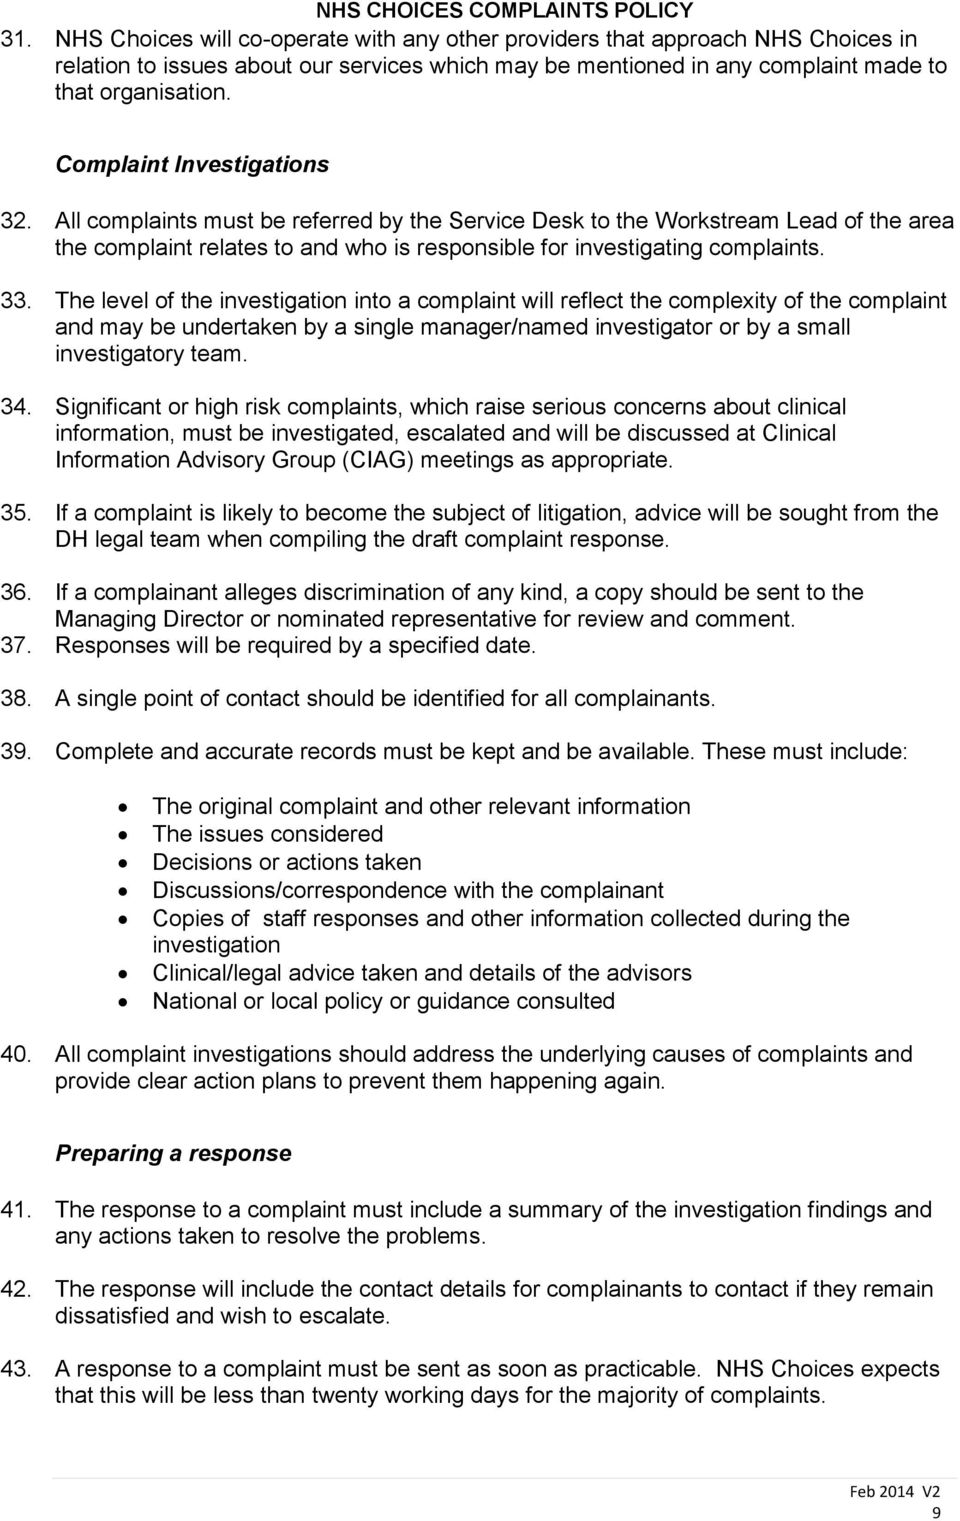 The level of the investigation into a complaint will reflect the complexity of the complaint and may be undertaken by a single manager/named investigator or by a small investigatory team. 34.